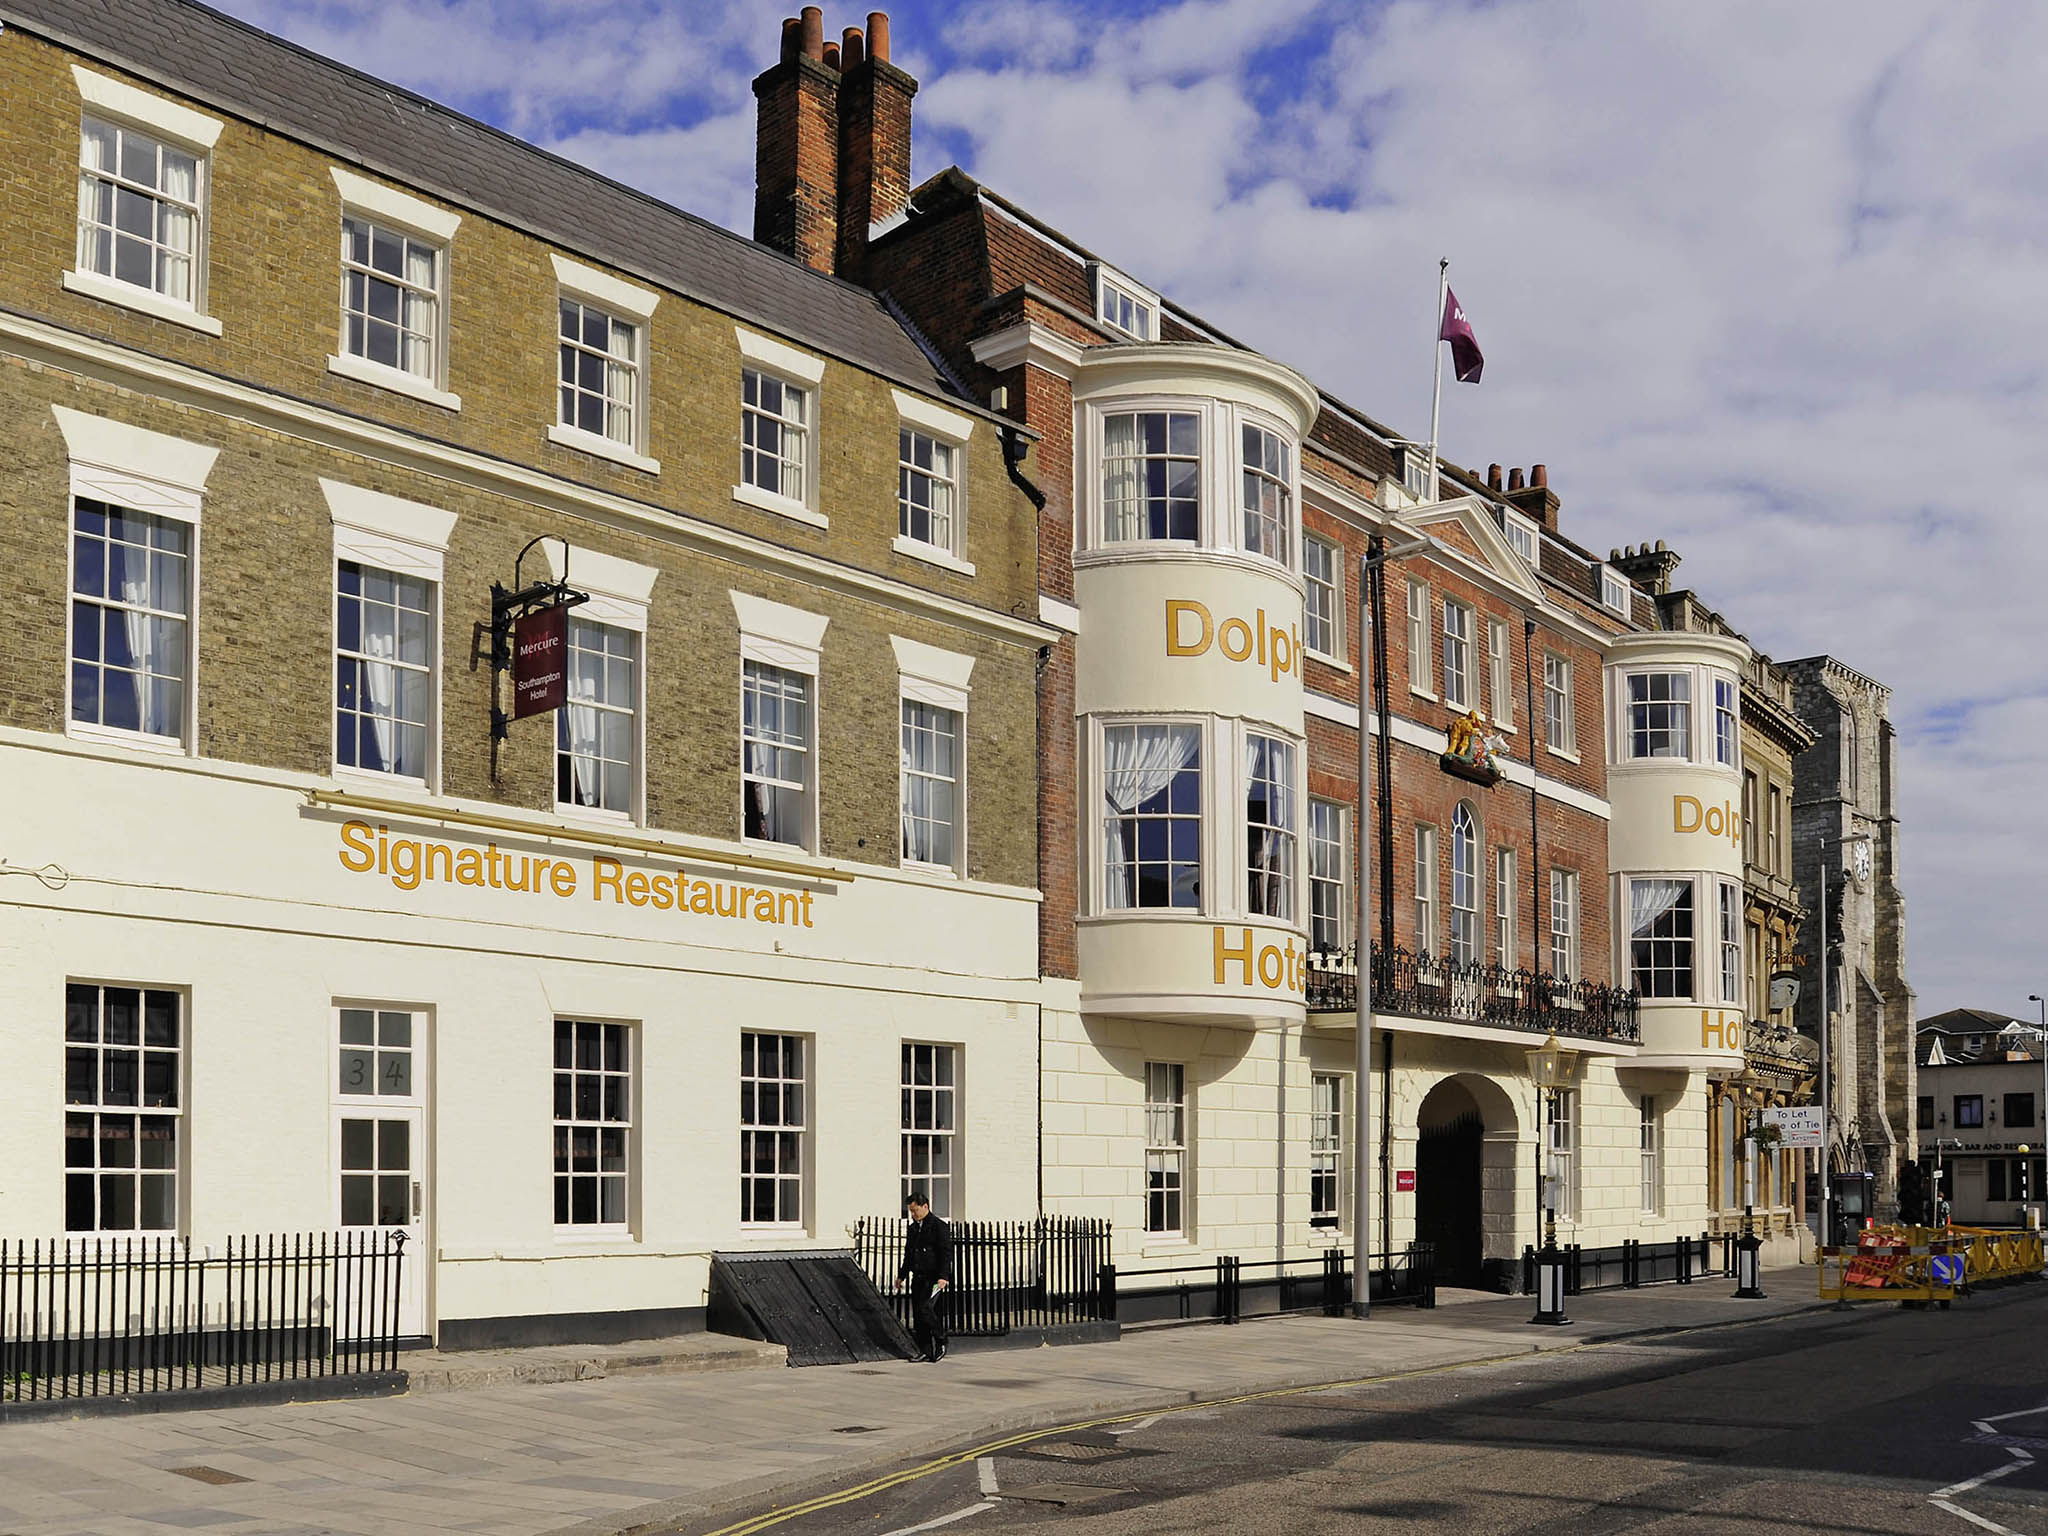 Hotel – Mercure Southampton Centre Dolphin